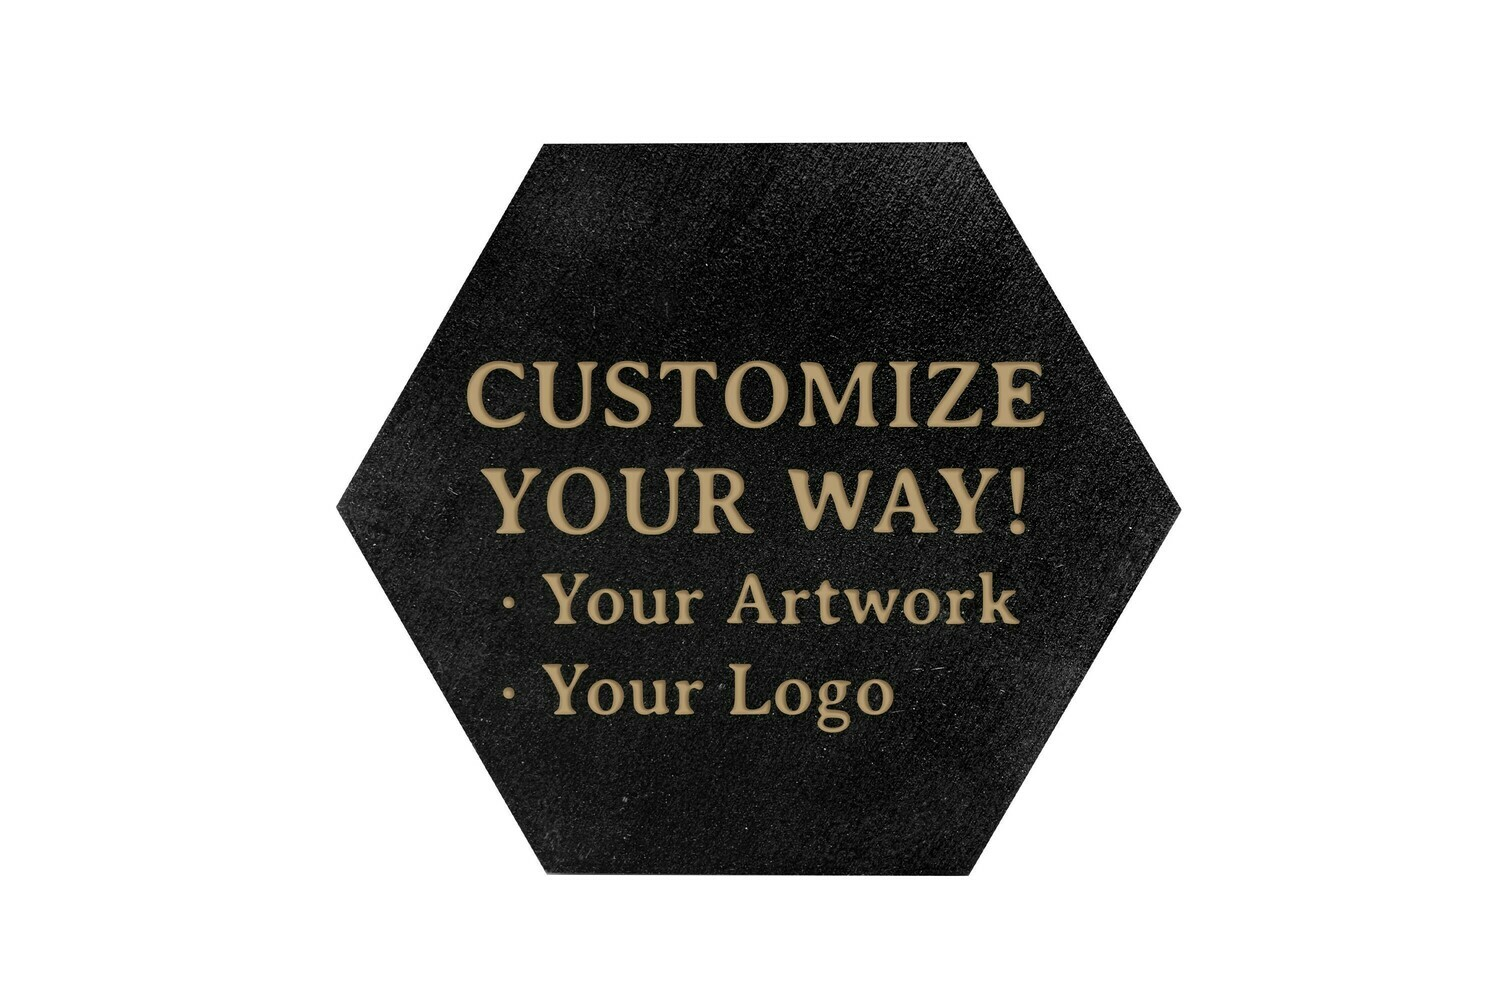 Customize Your Way HEX Hand-Painted Wood Coaster Set